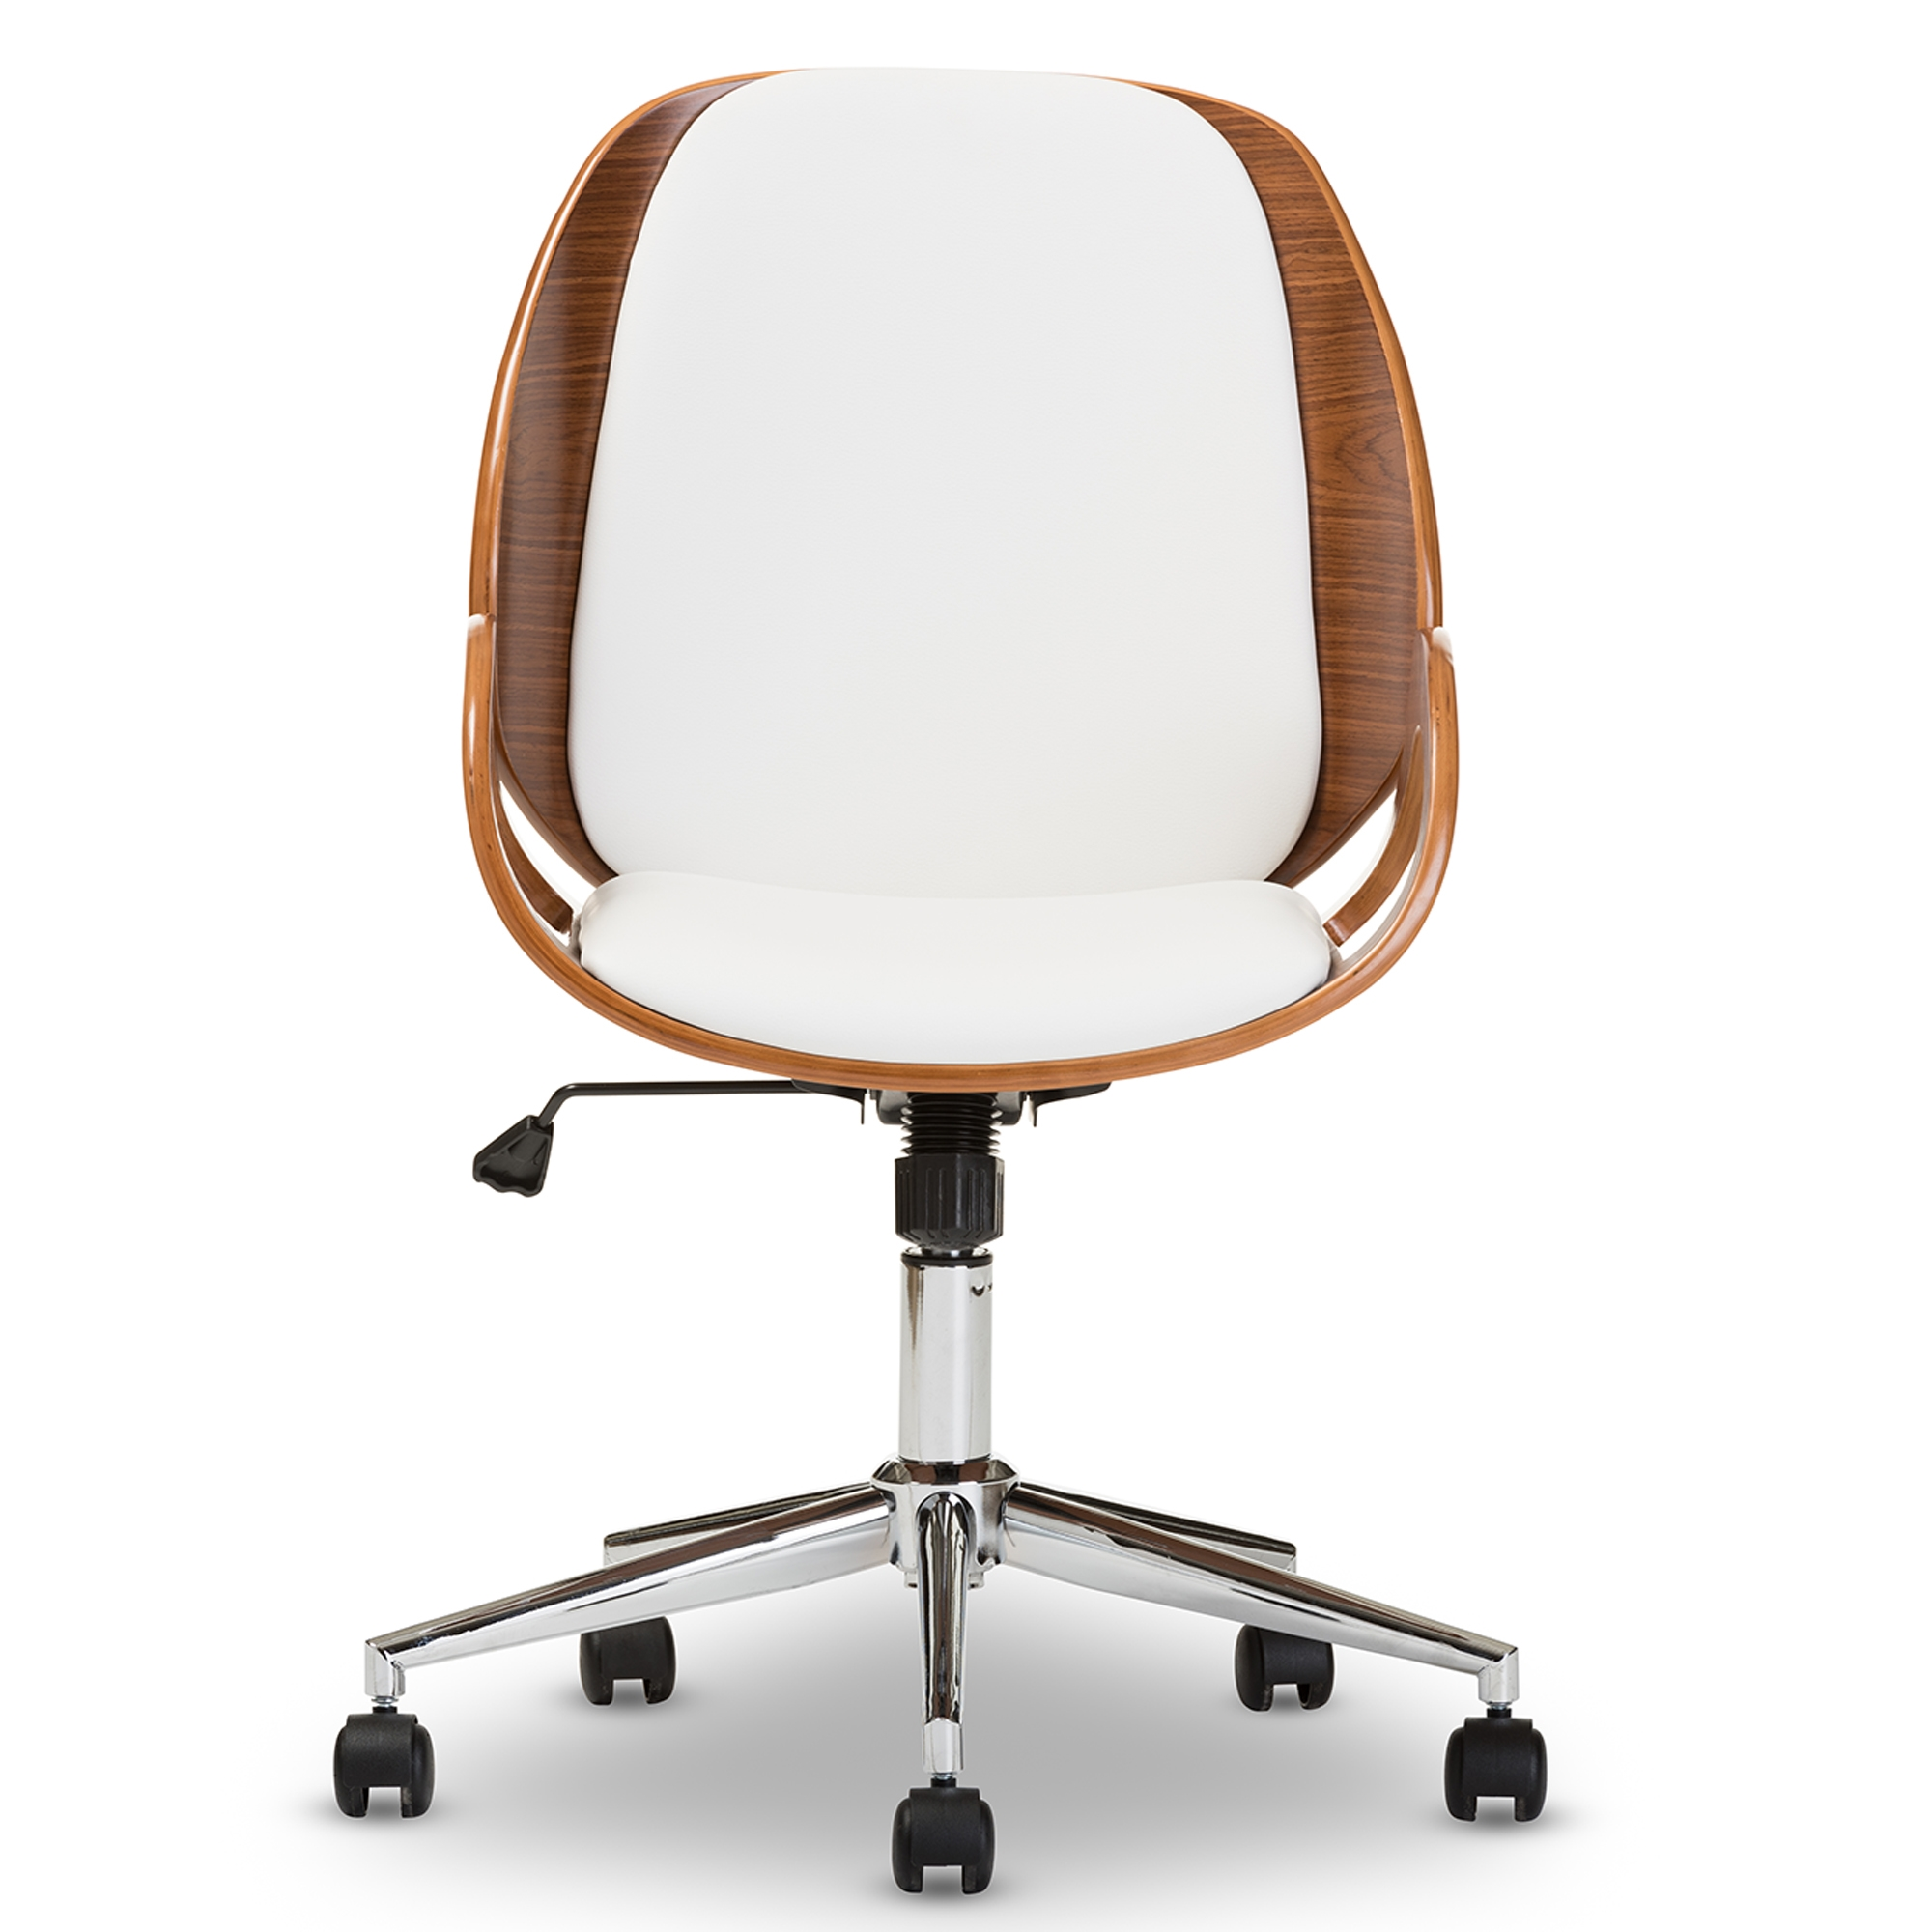 baxton studio watson modern and white and walnut office chair affordable modern furniture in chicago